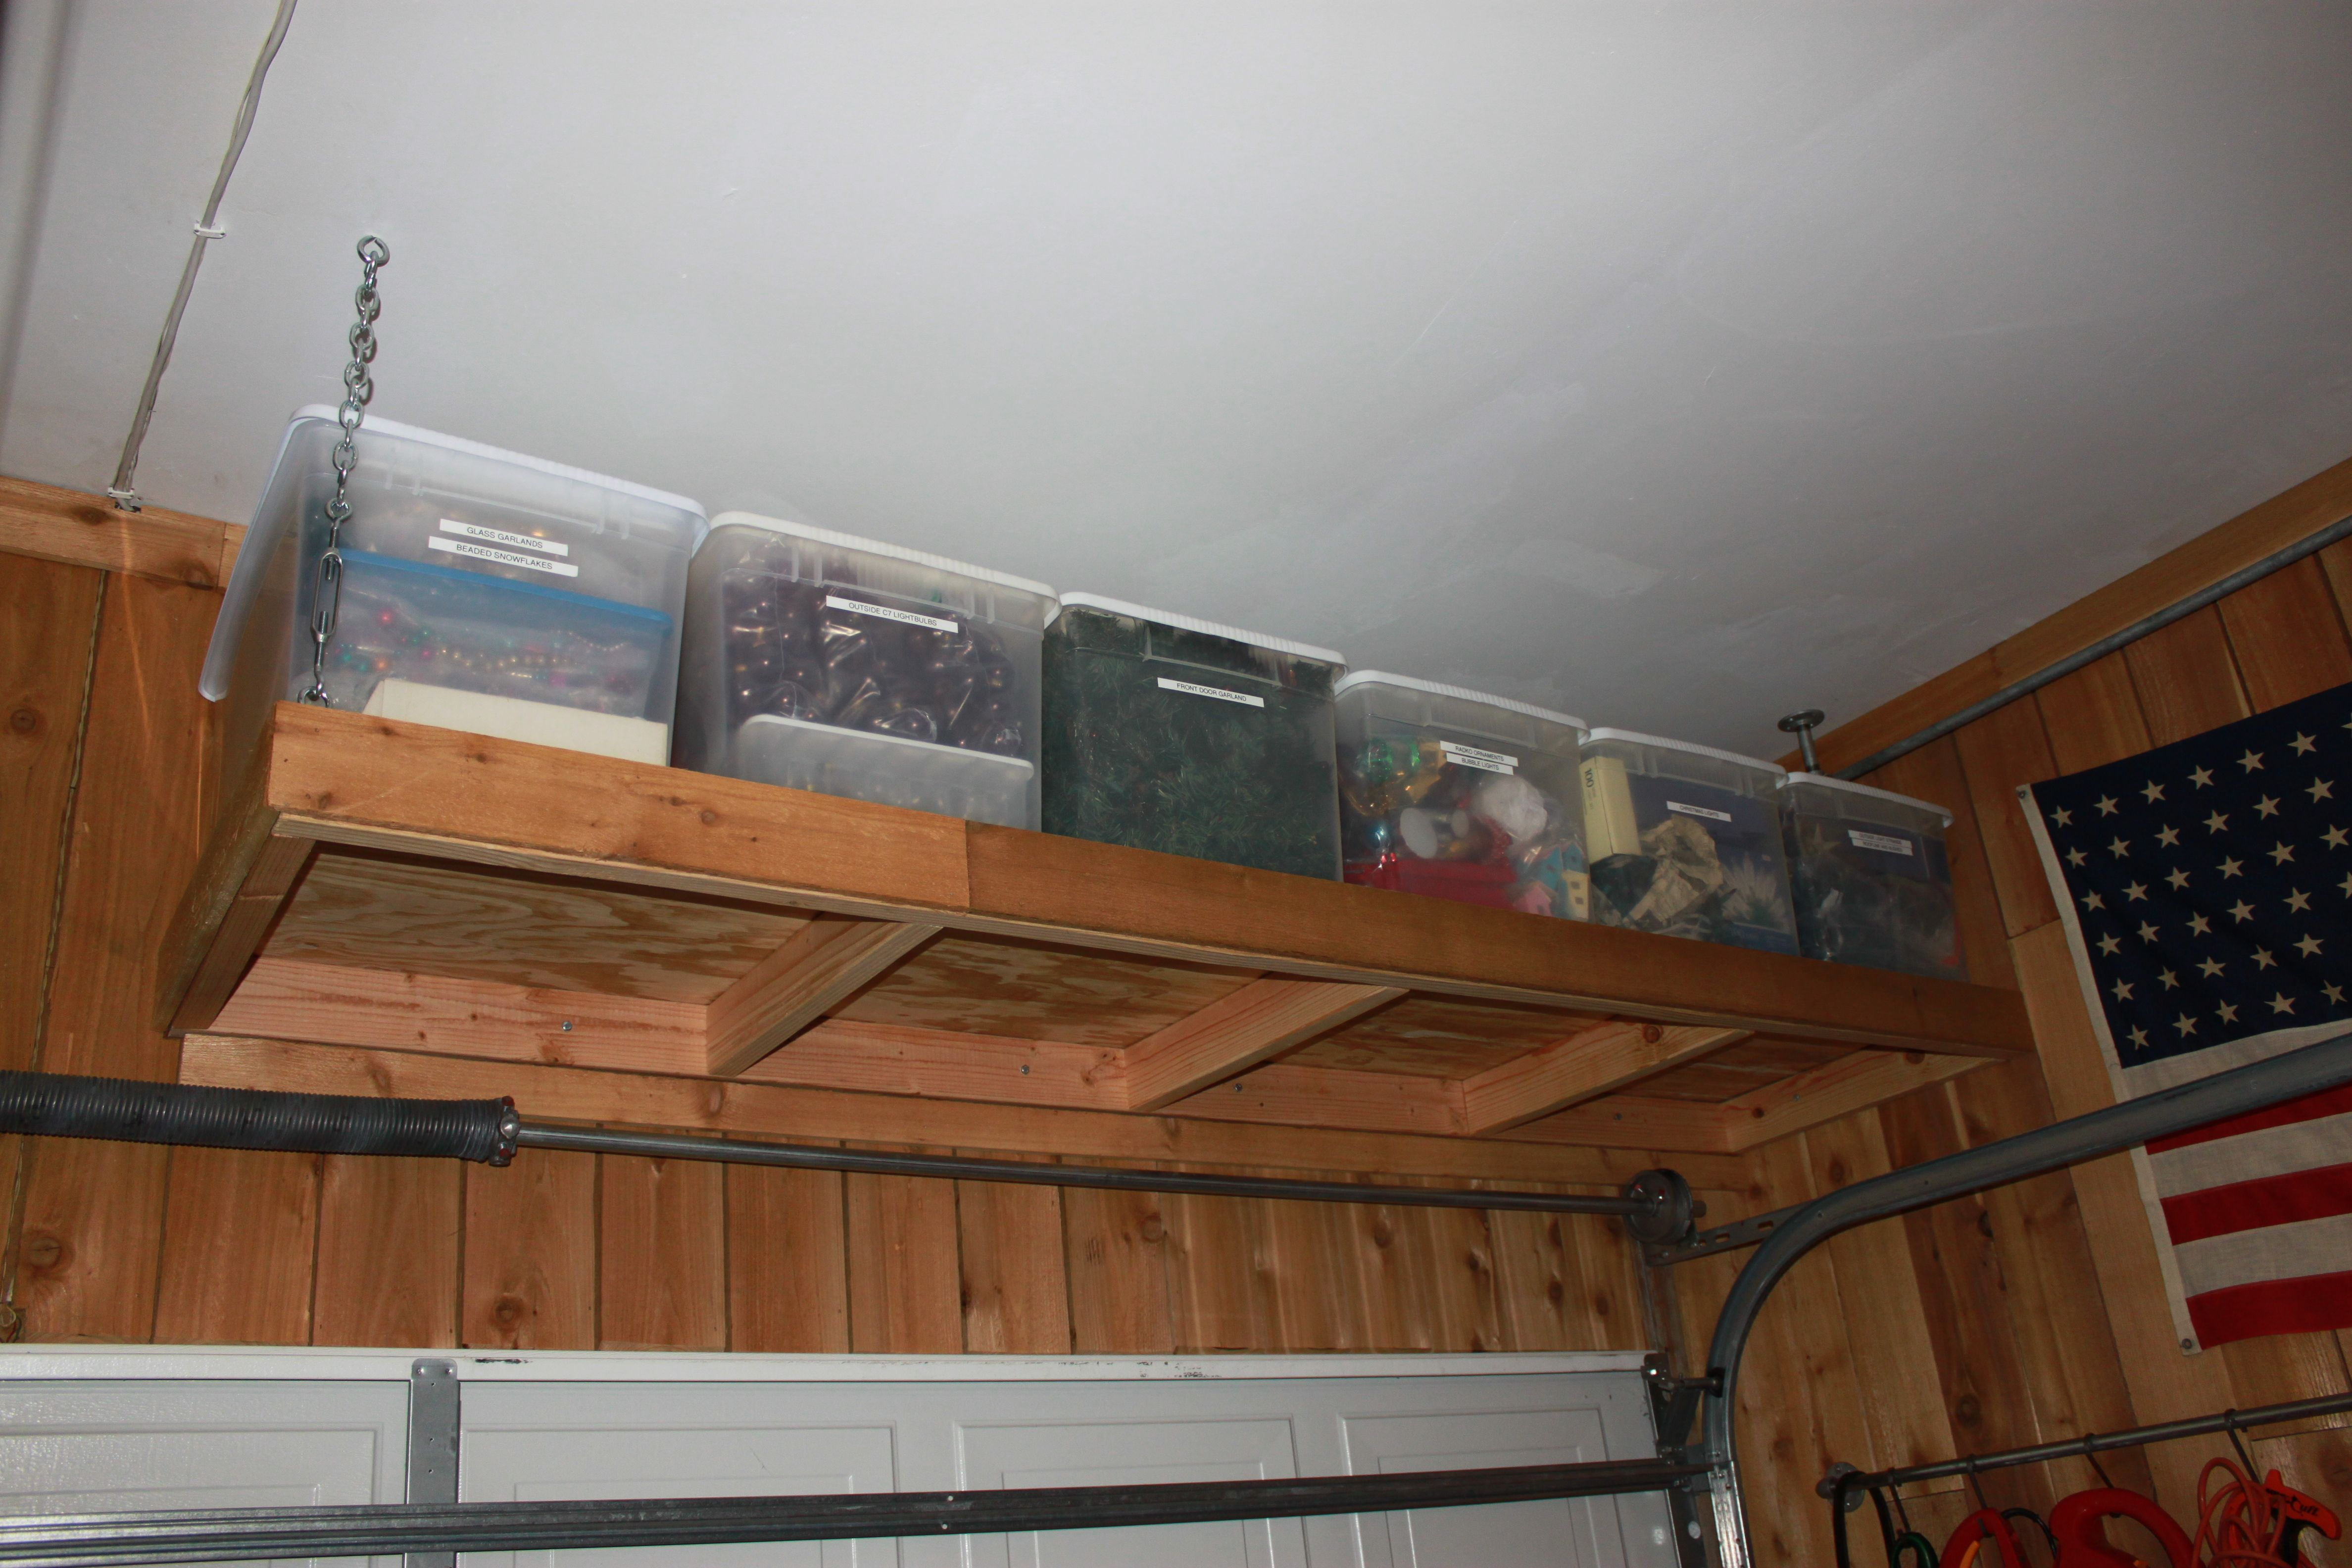 to system storage ideas installation ceilings trend size loft chains build shelf of how diy overhead with hanging full shelves garage pulley ceiling